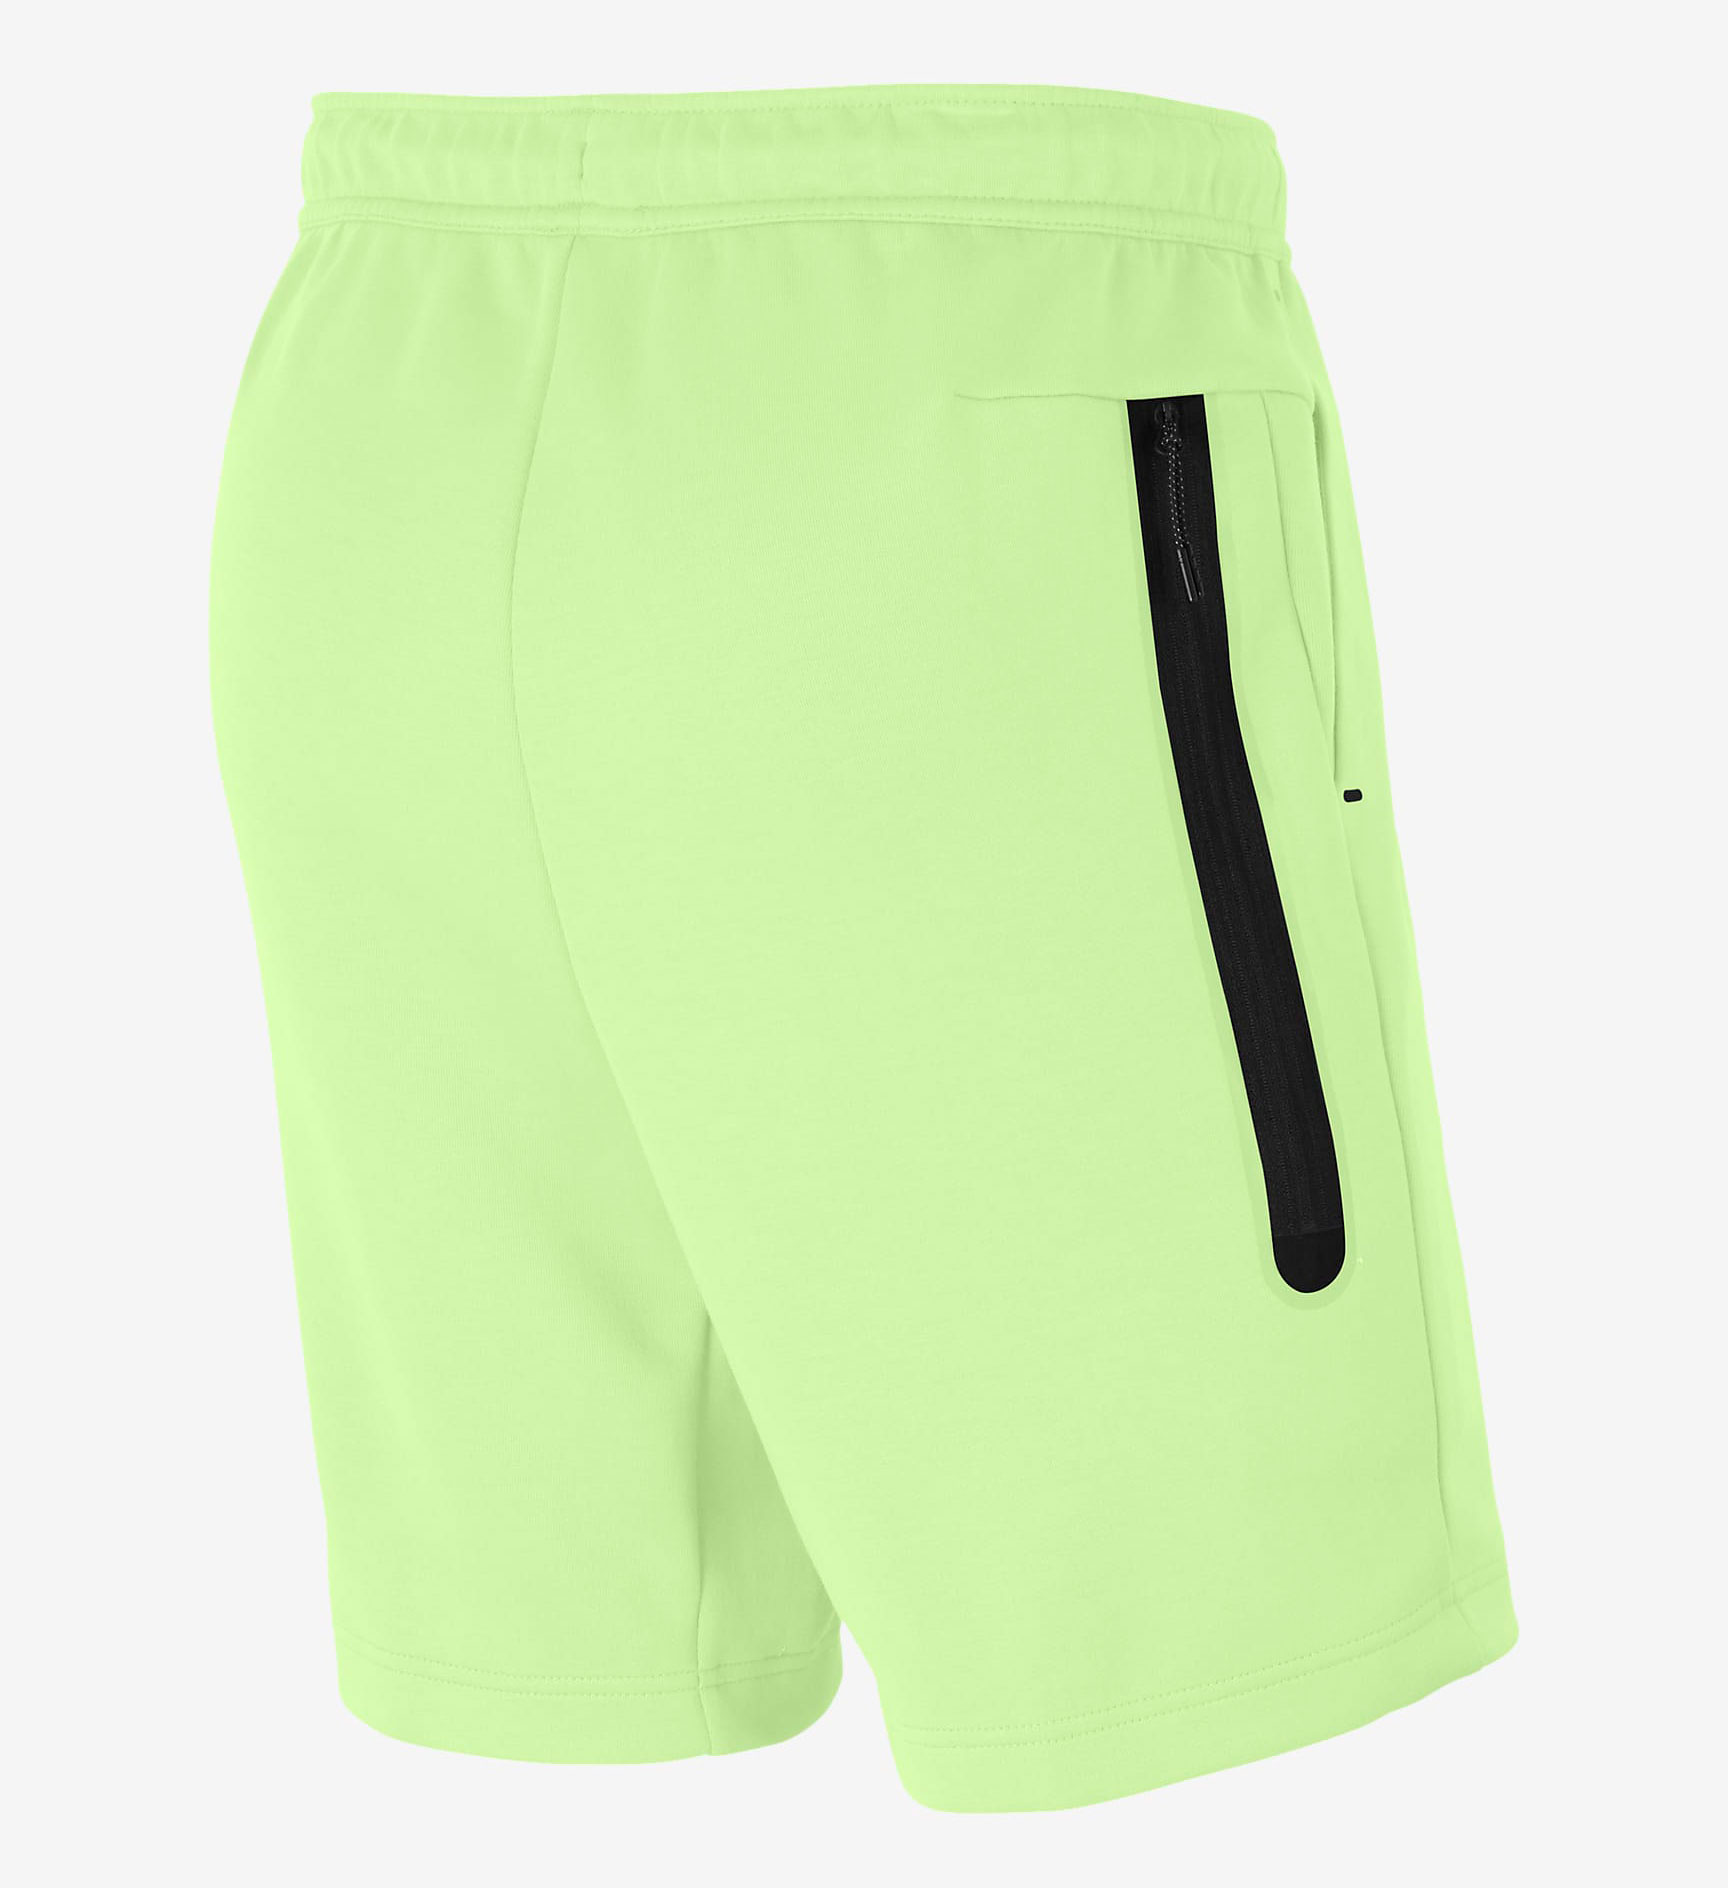 nike-tech-fleece-shorts-light-liquid-lime-2